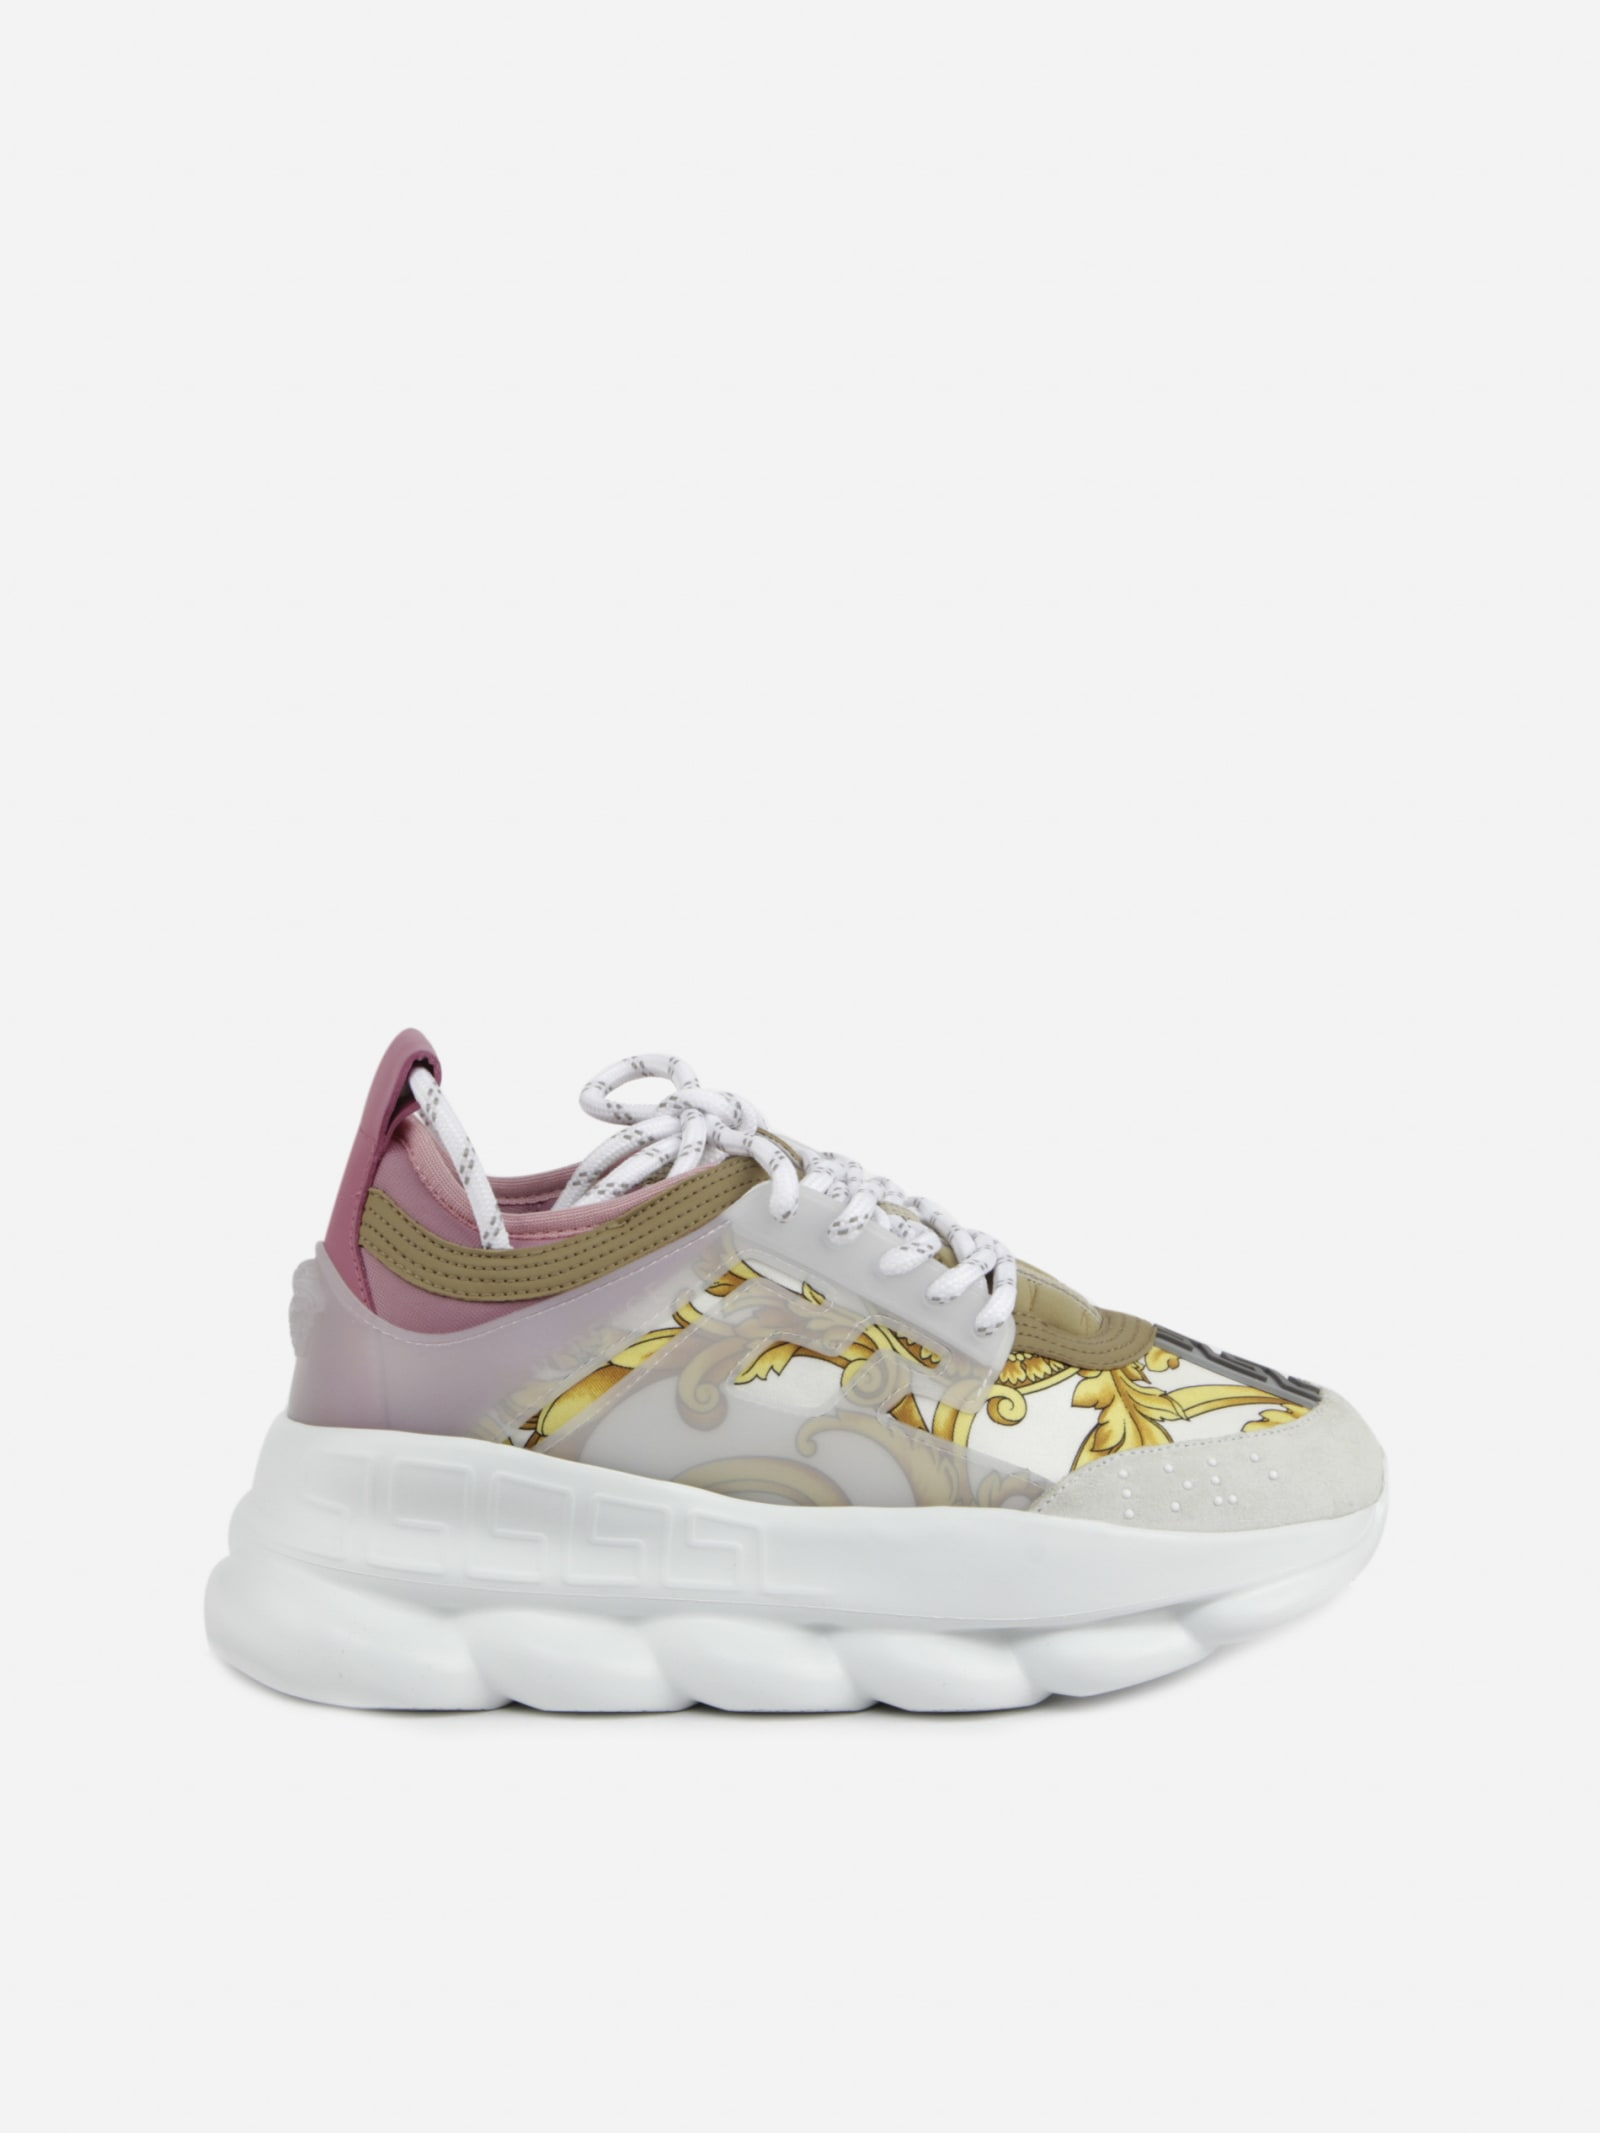 Versace CHAIN REACTION SNEAKERS WITH GOLD HIBISCUS PRINT